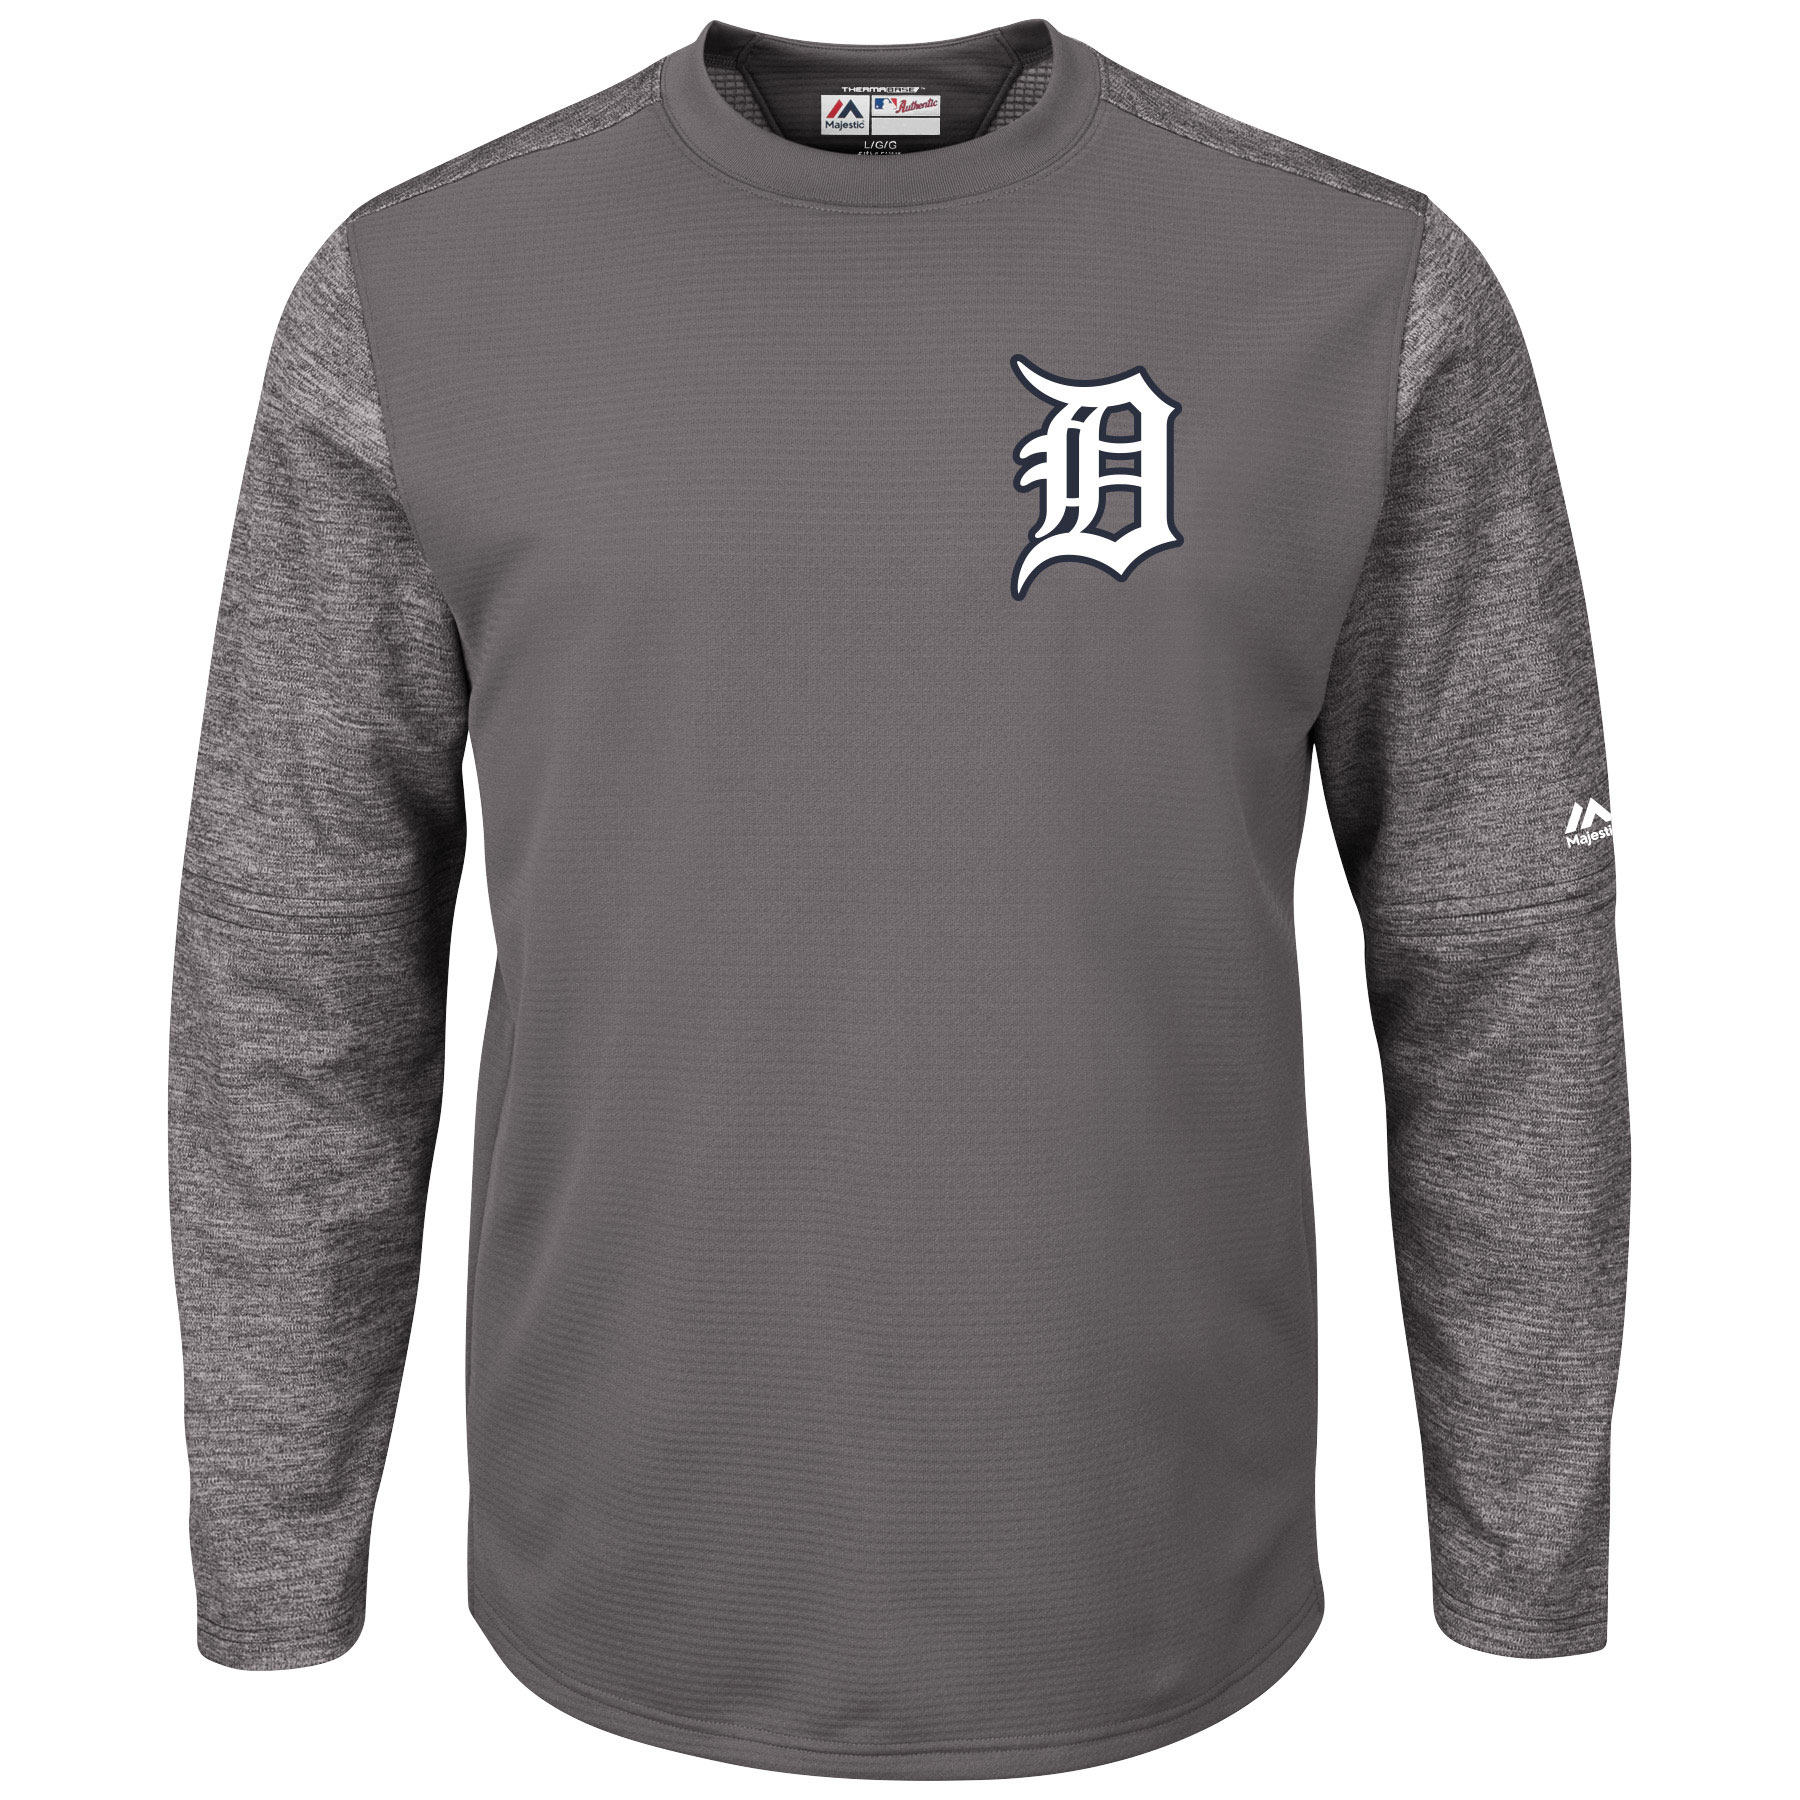 Detroit Tigers Majestic Alternate Authentic Tech Fleece Pullover Sweatshirt - Graphite